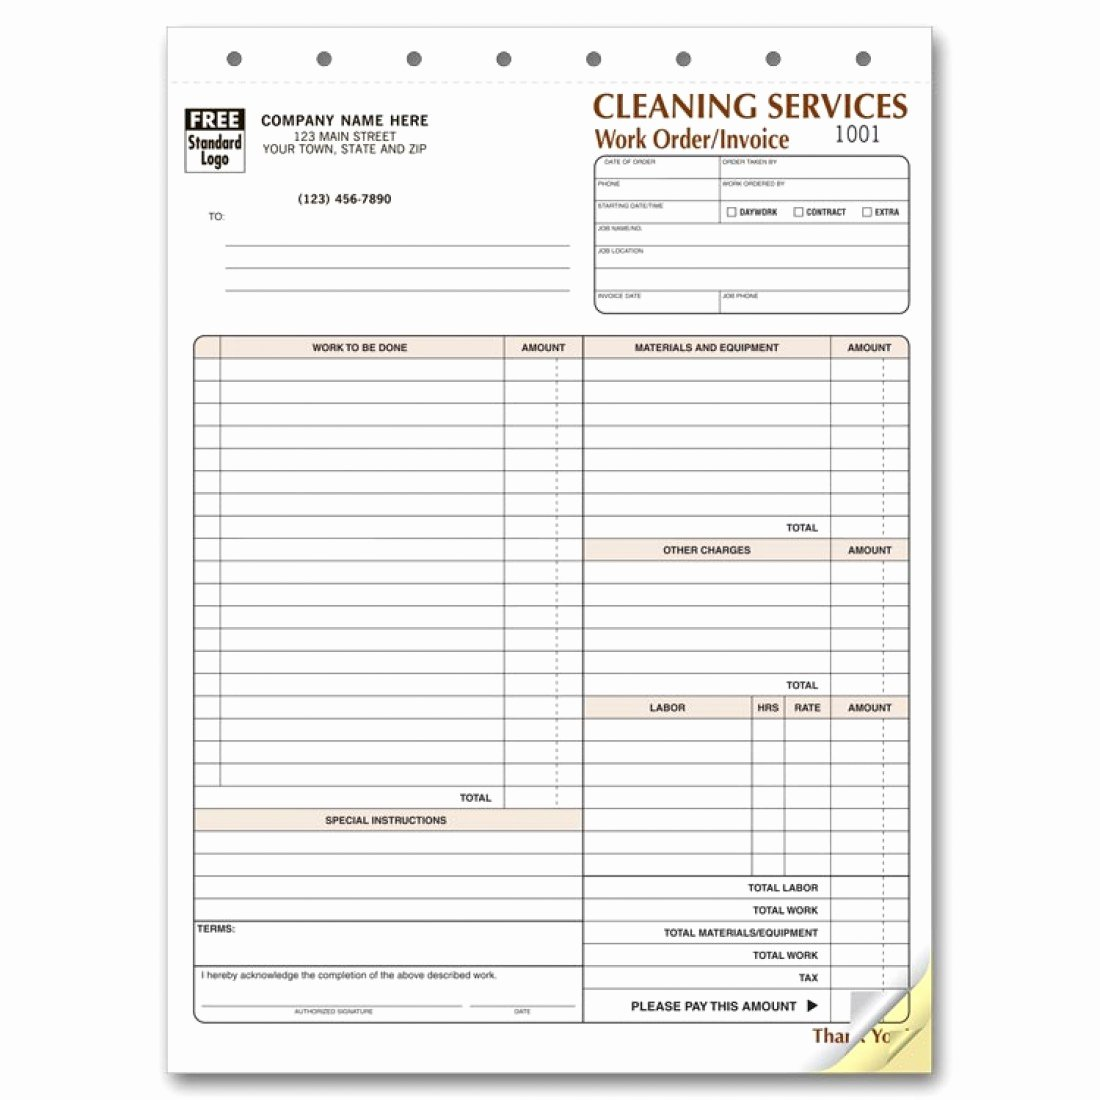 Cleaning Services Invoice Template Beautiful Cleaning Service Invoice forms